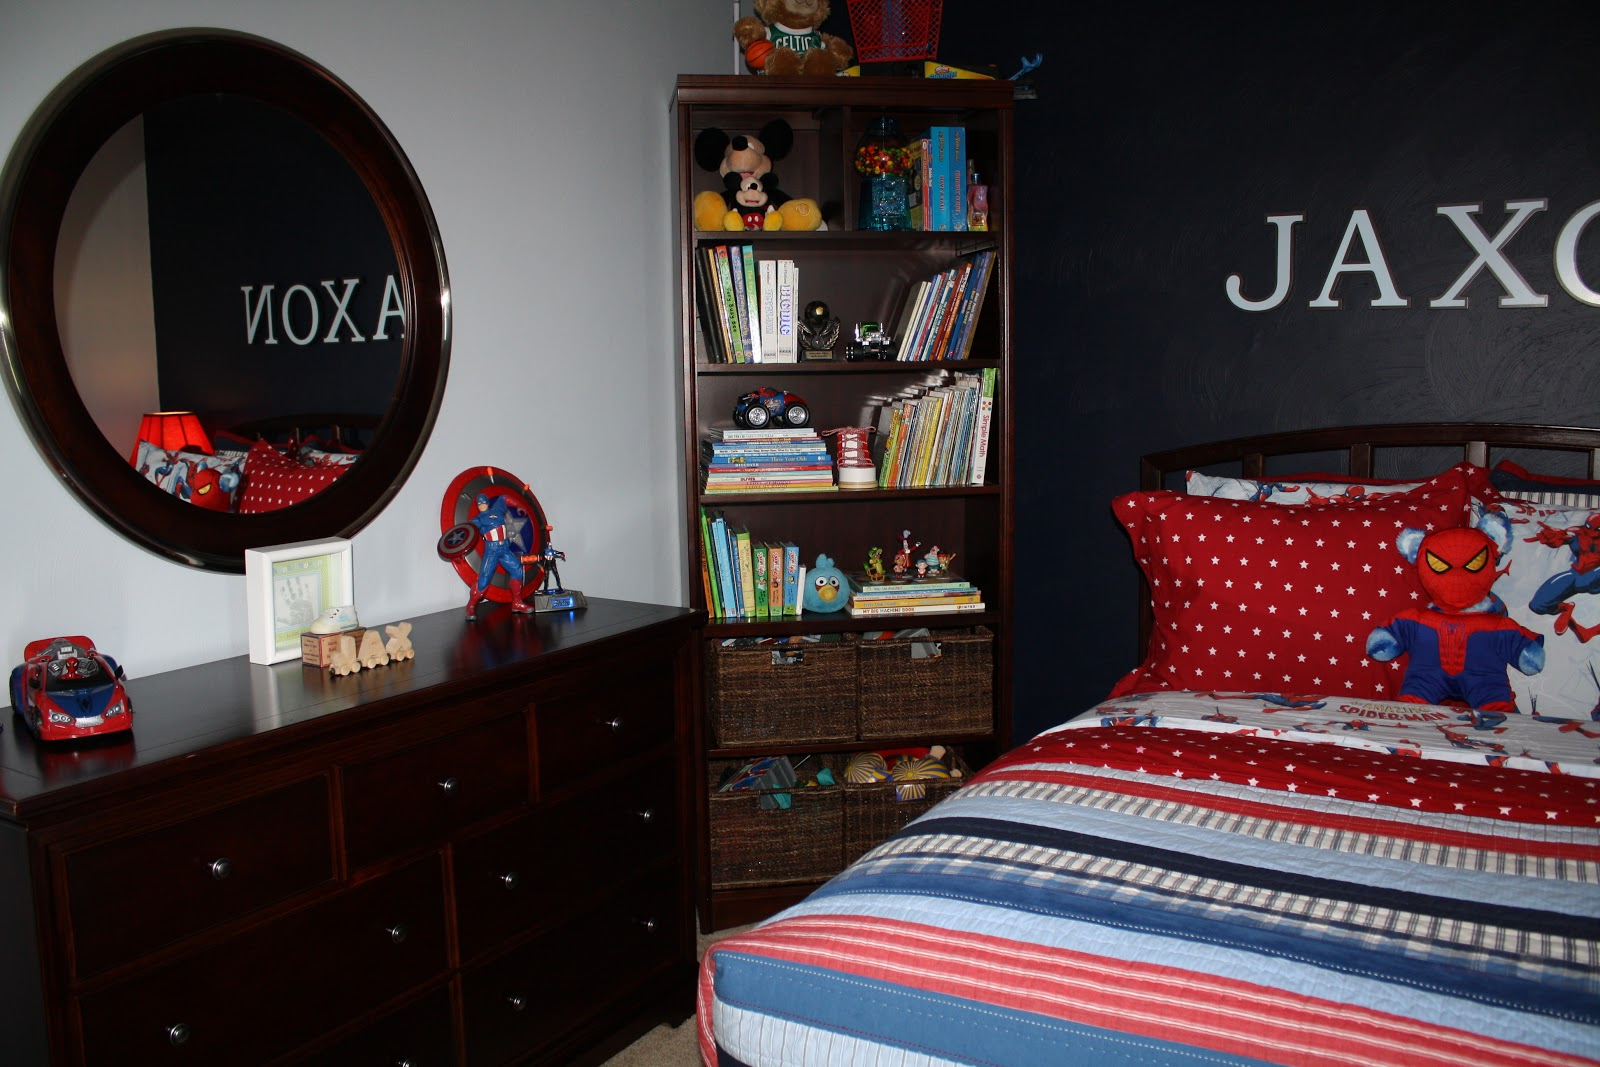 Pottery barn trash can - Can You Spot The Build A Bear Dressed Up Like Spiderman The Bedding Came From Pottery Barn